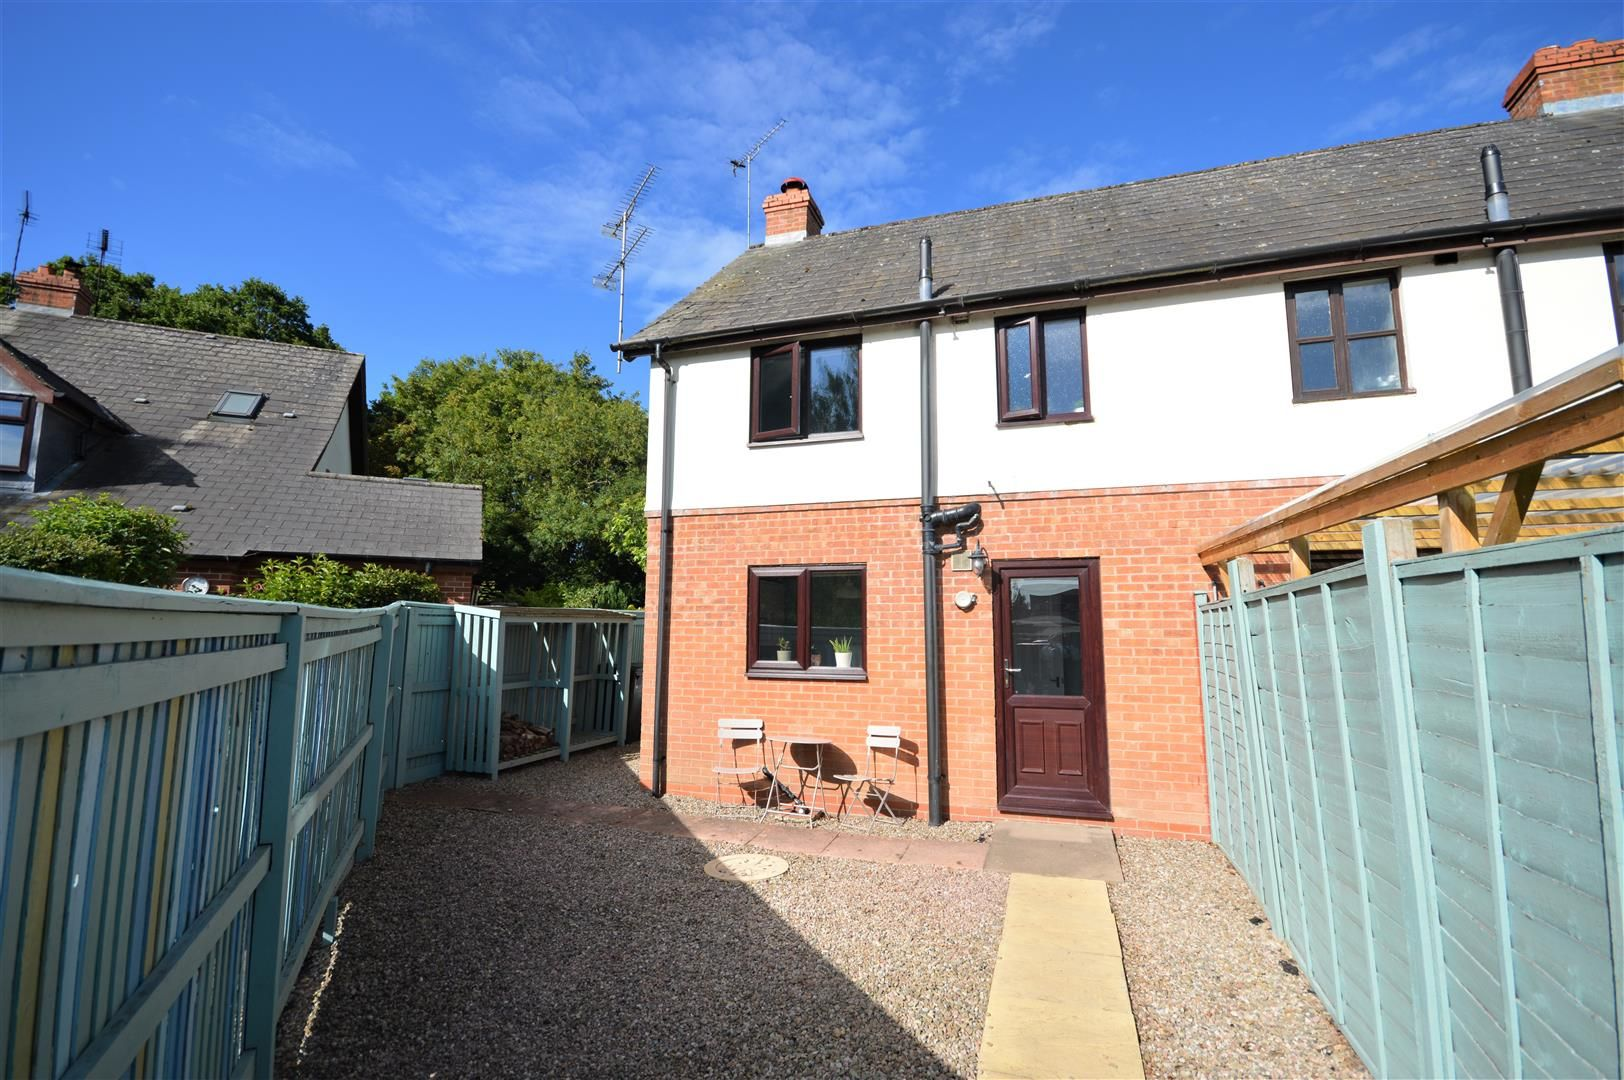 2 bed end-of-terrace for sale in Leominster  - Property Image 6